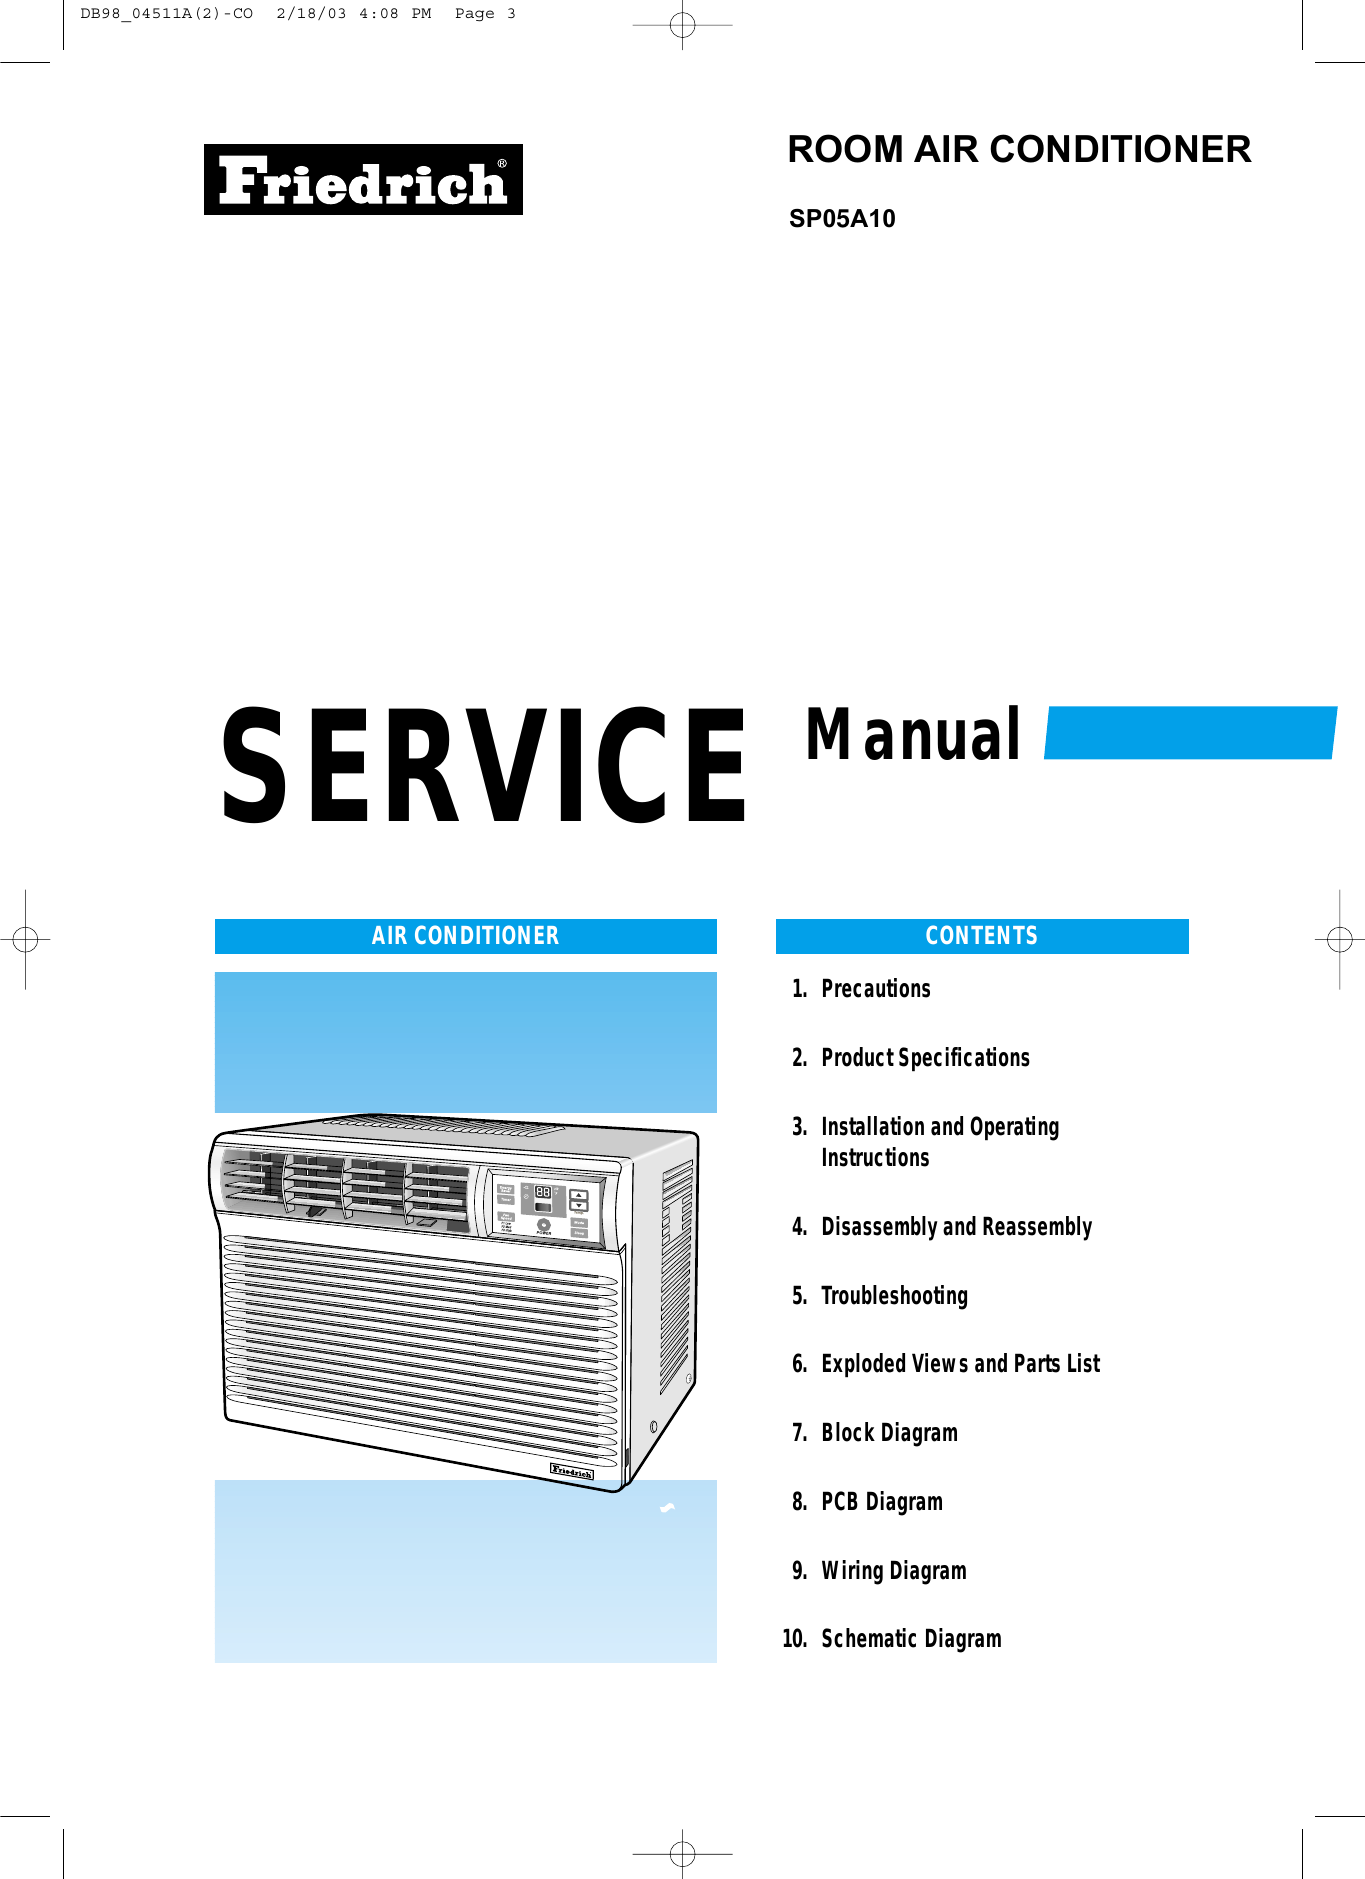 Friedrich Air Conditioner Sp05a10 Users Manual Wiring Diagram